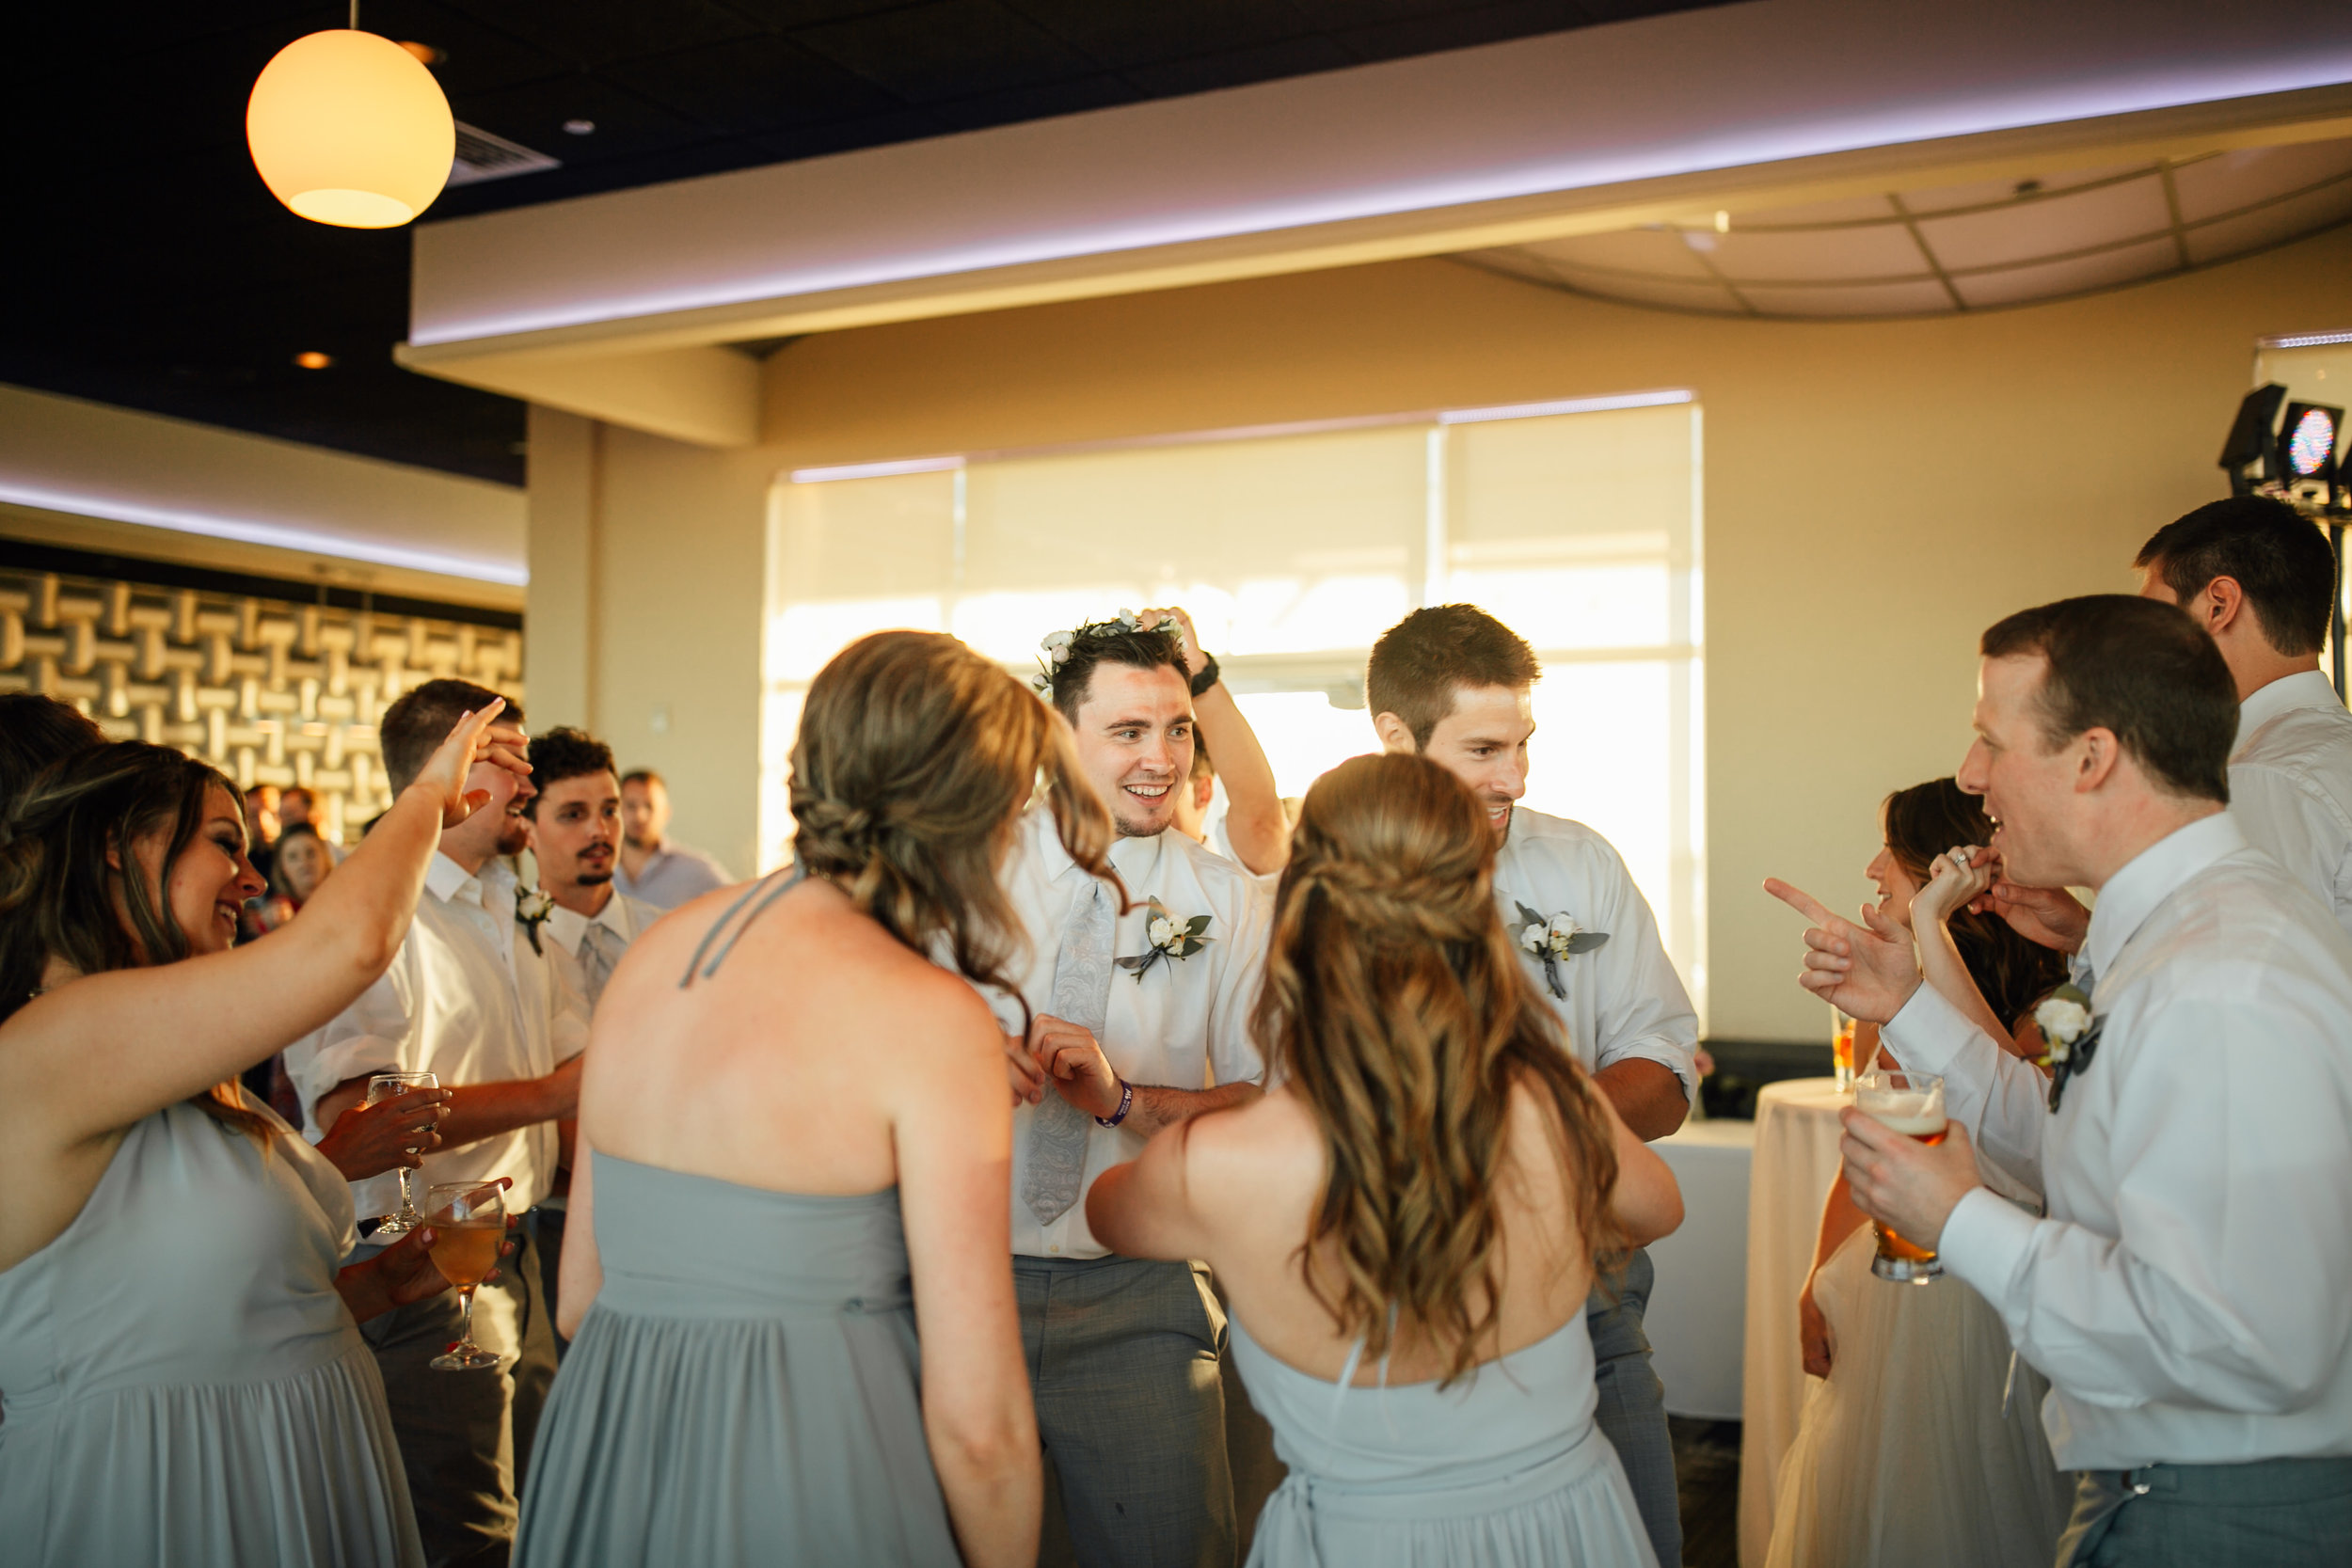 2018-6-Kat-Mike-Reception-Holland-Wedding-Michigan-Wedding-Photographer-258.jpg